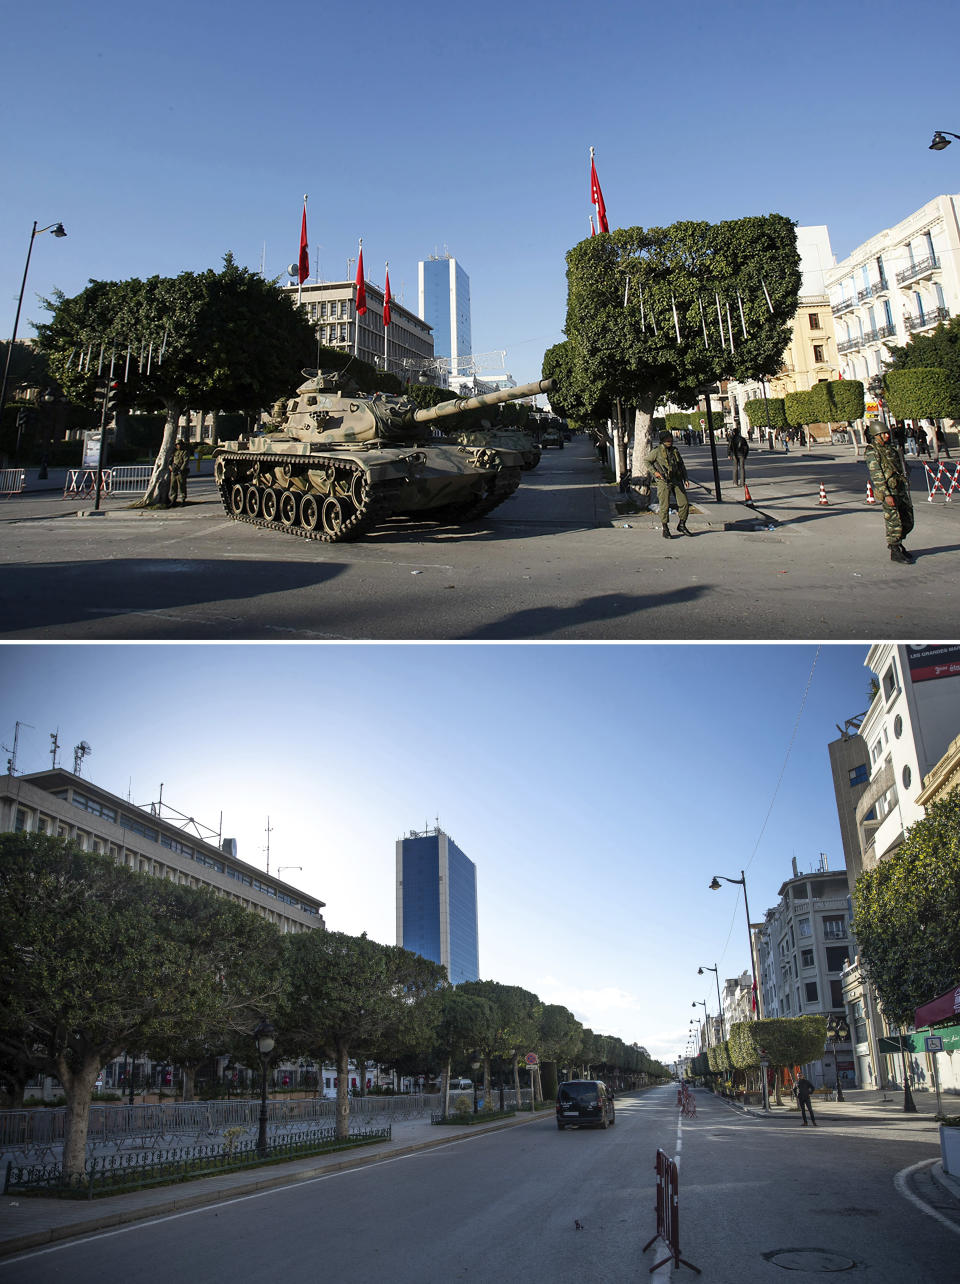 A combo image showing a tank guarding the center of Tunis, Sunday, Jan. 16. 2011, top, and an empty street near Tunis' landmark Avenue Habib Bourgiba, on the tenth anniversary of the uprising, due to a national lockdown after a surge in COVID-19 cases, in Tunis, Thursday, Jan. 14, 2021. Tunisia is commemorating the 10th anniversary since the flight into exile of its iron-fisted leader, Zine El Abidine Ben Ali, pushed from power in a popular revolt that foreshadowed the so-called Arab Spring. But there will be no festive celebrations Thursday marking the revolution in this North African nation, ordered into lockdown to contain the coronavirus. (AP Photo/Christophe Ena, Mosa'ab Elshamy)